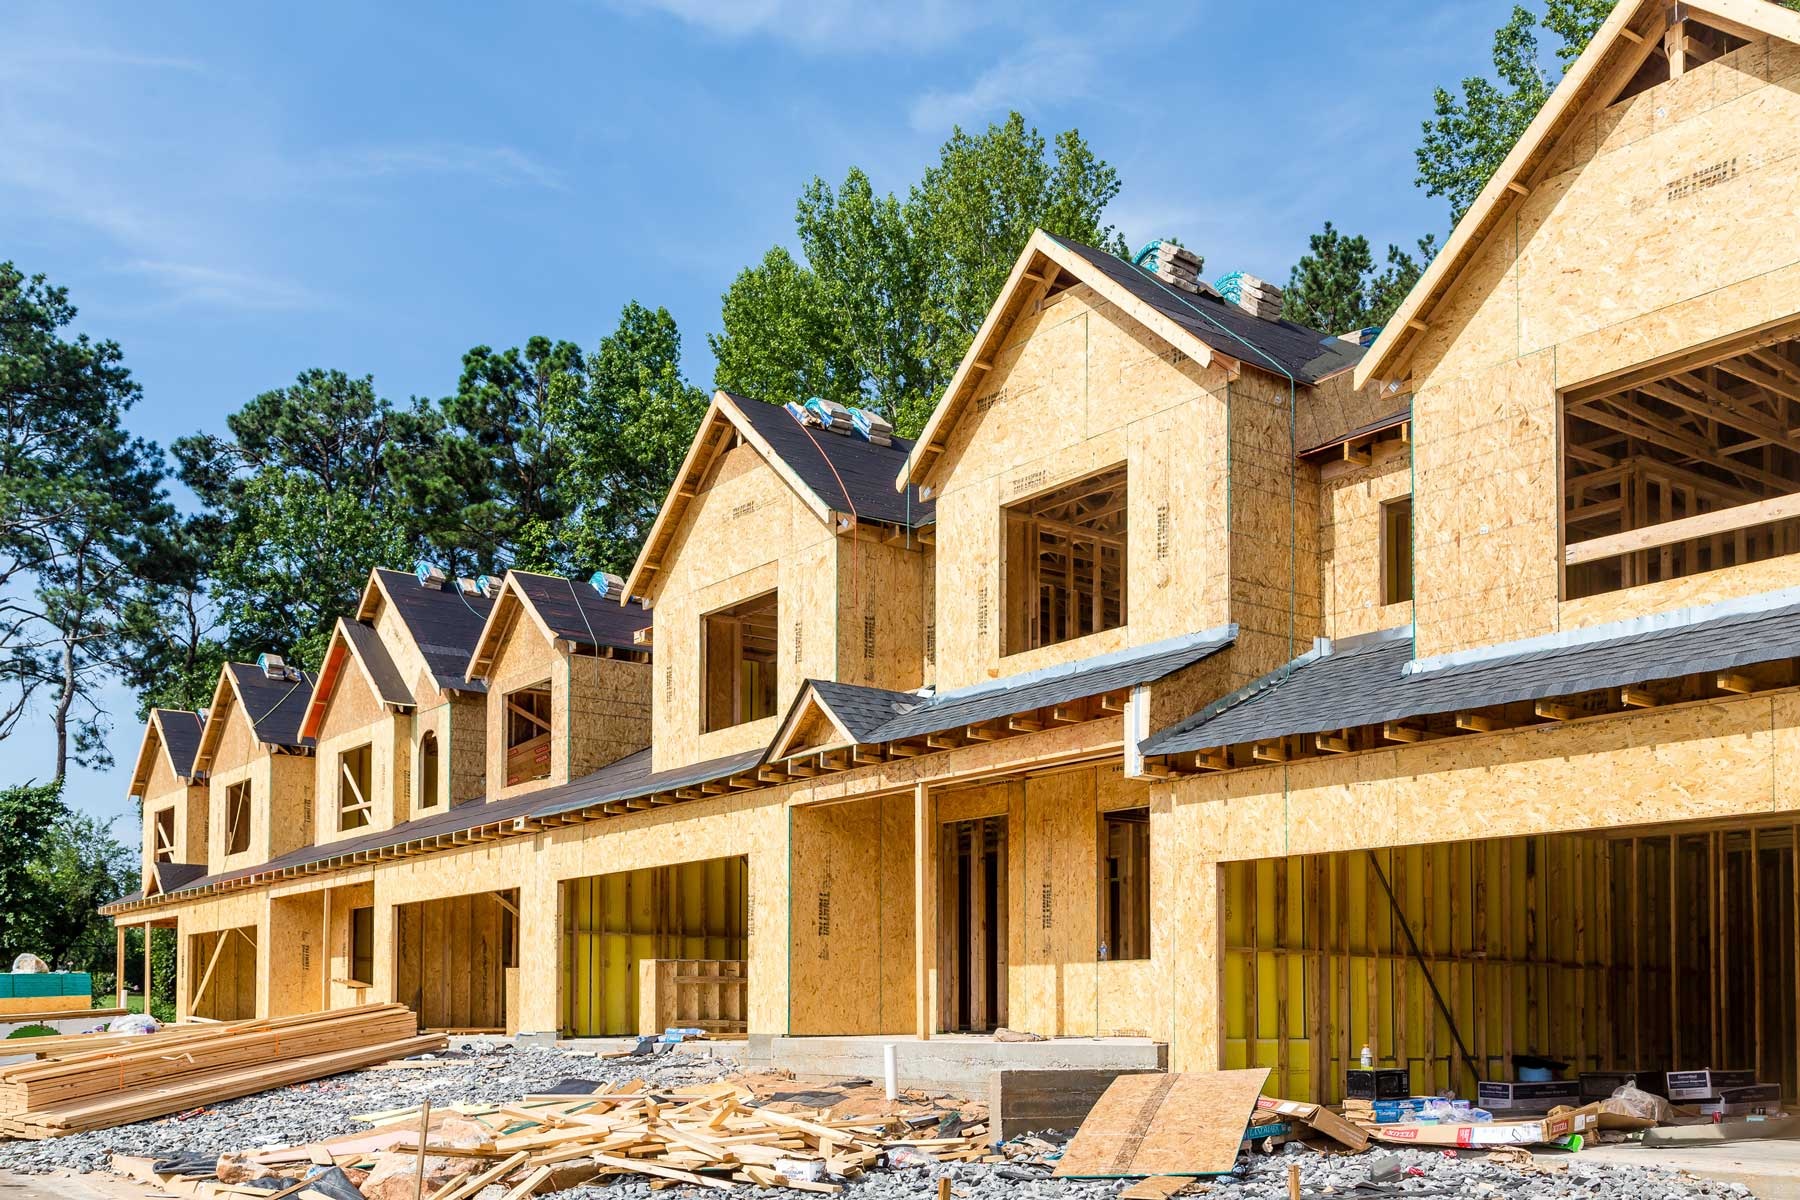 New Construction Rosie Home Inspections